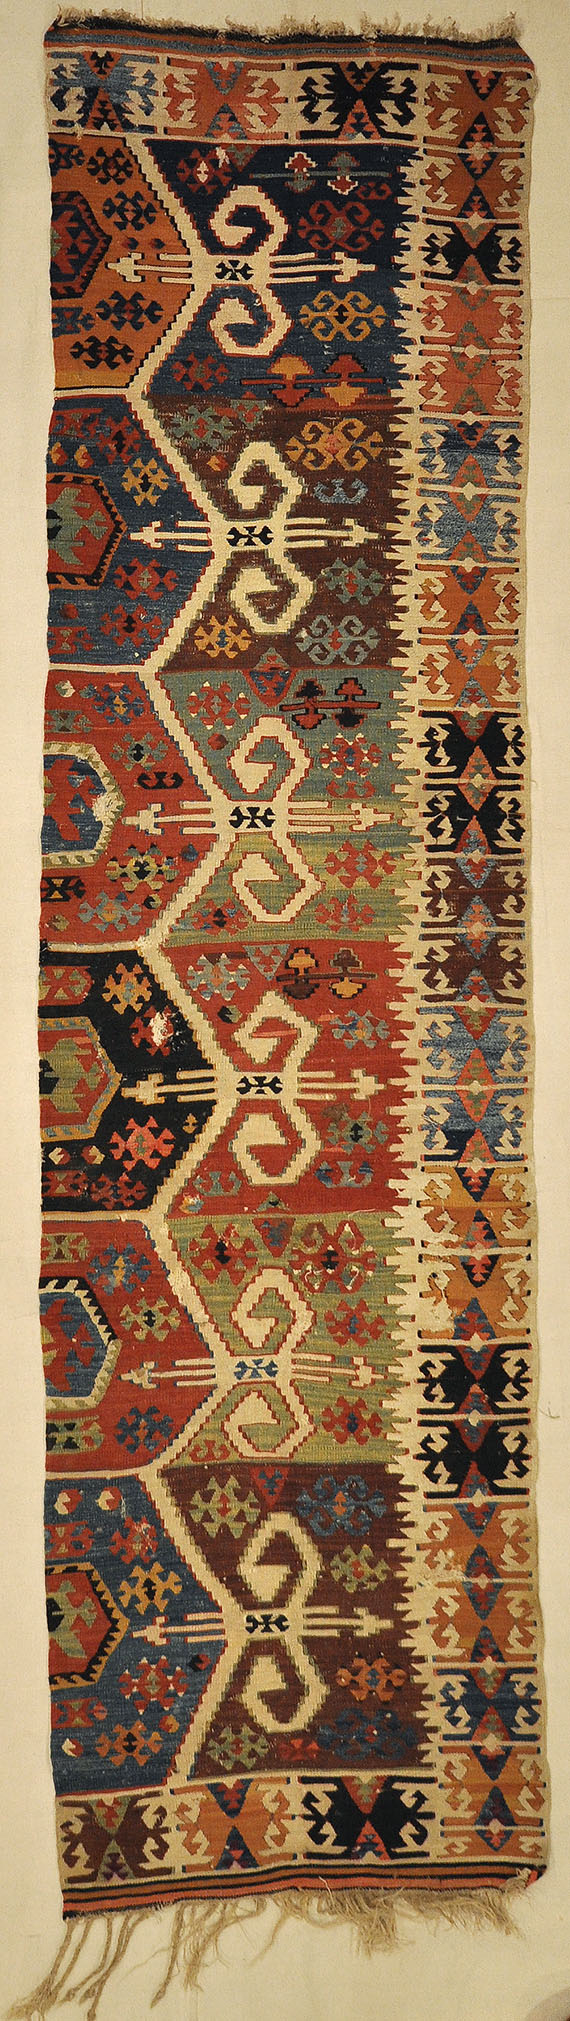 Anatolia Goddess Turkish Kelim ca Late 1700s. A piece of antique woven carpet art sold by the Santa Barbara Design Center, Rugs and More in California.